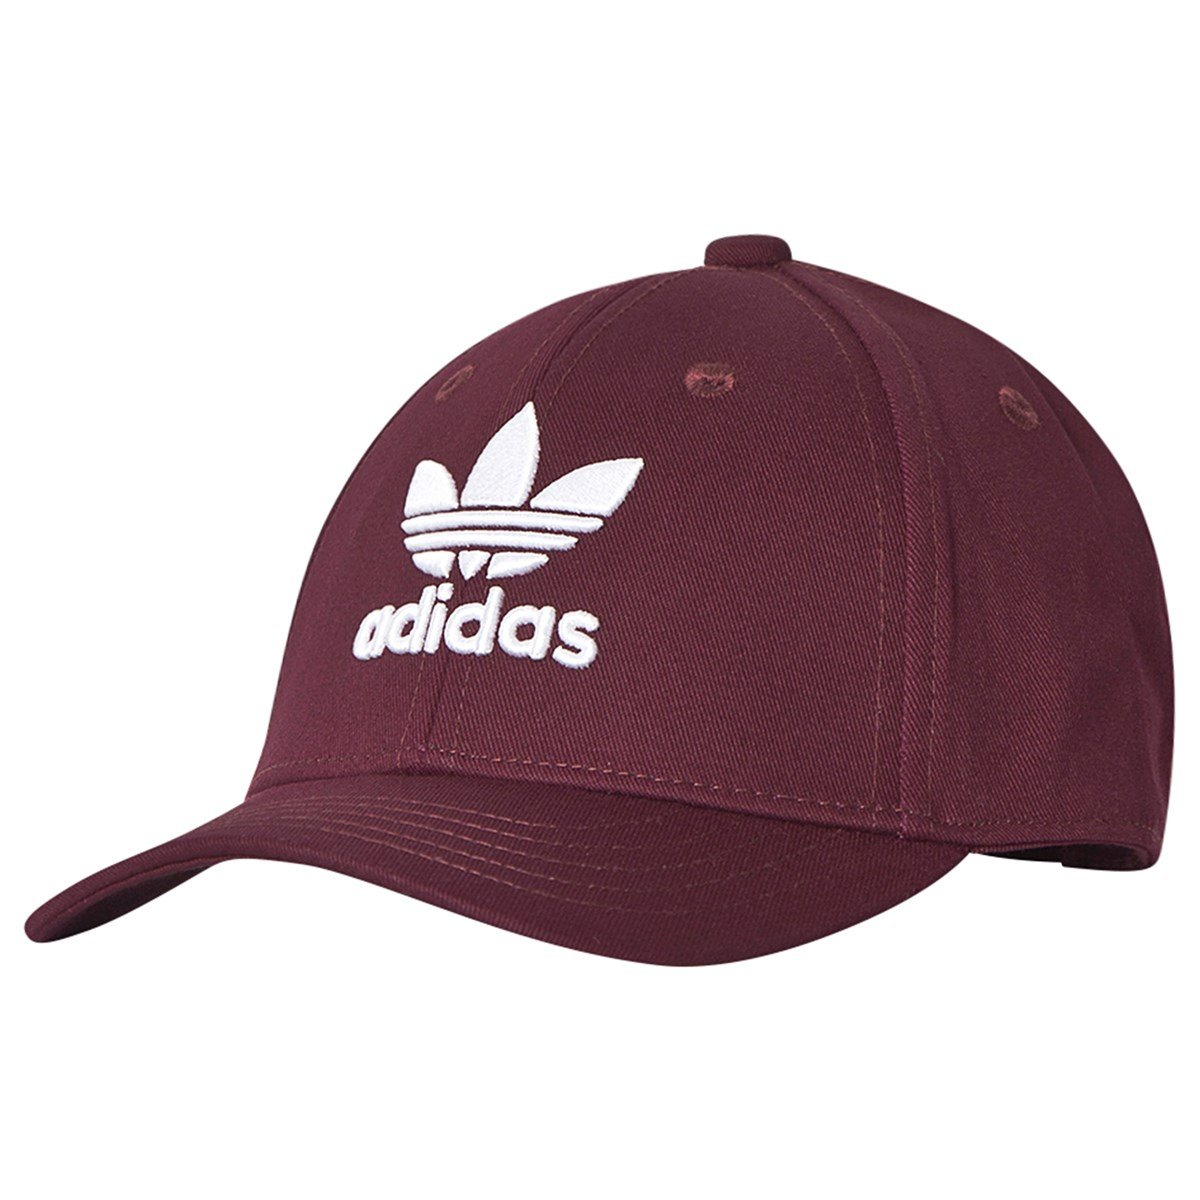 Adidas Originals CZAPKA burgundowa